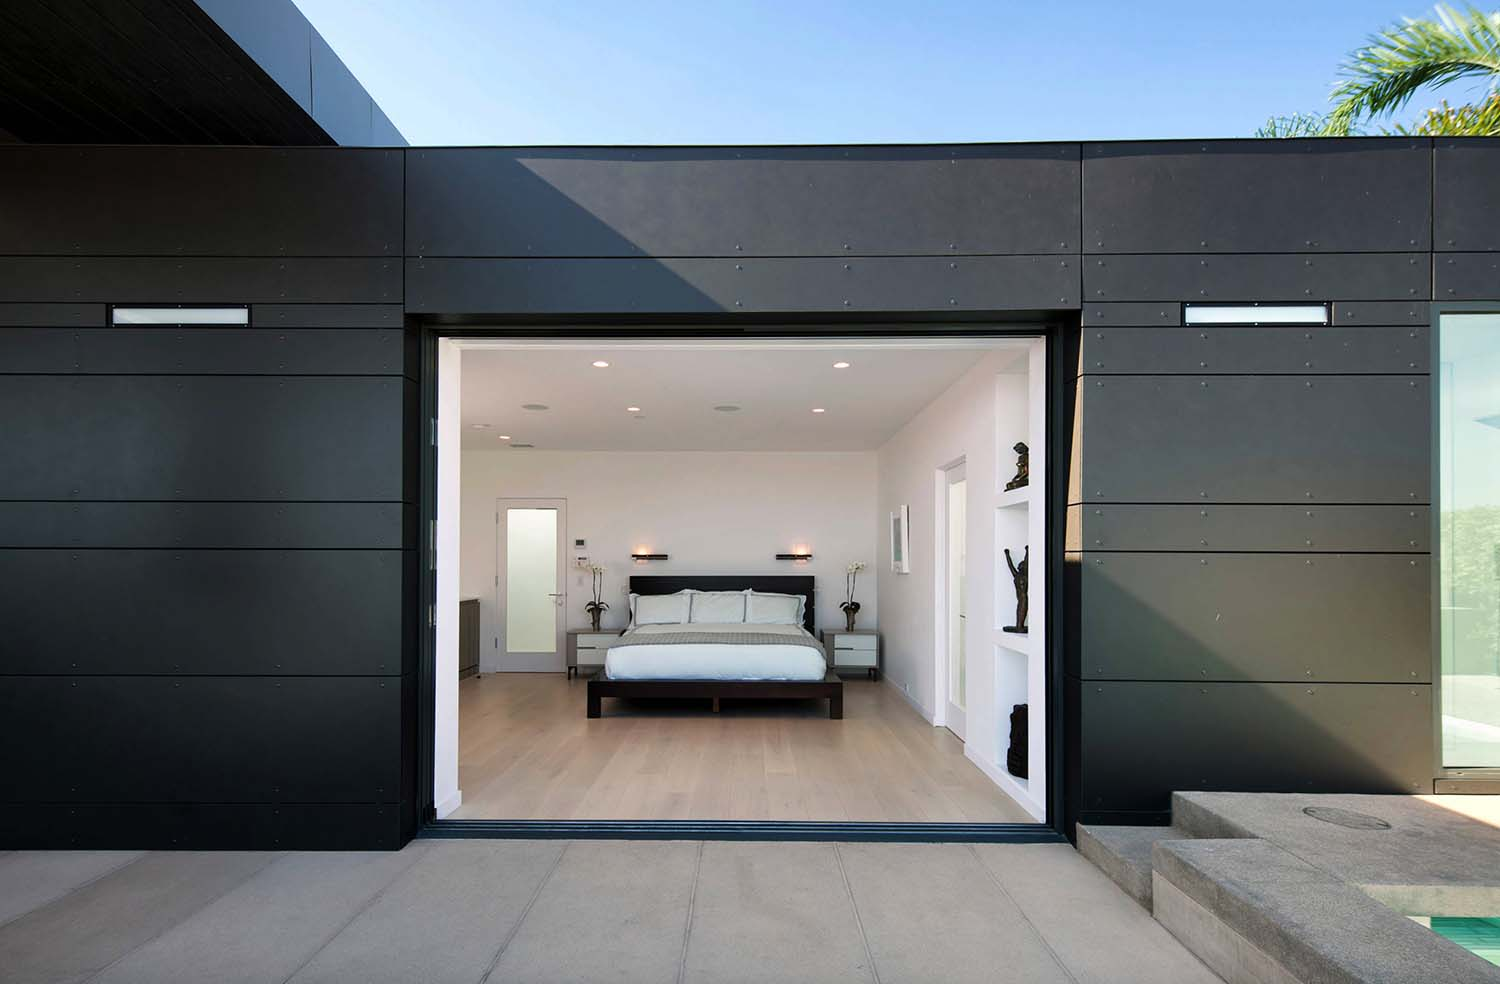 Striking Contemporary Home-Abramson Teiger Architects-10-1 Kindesign